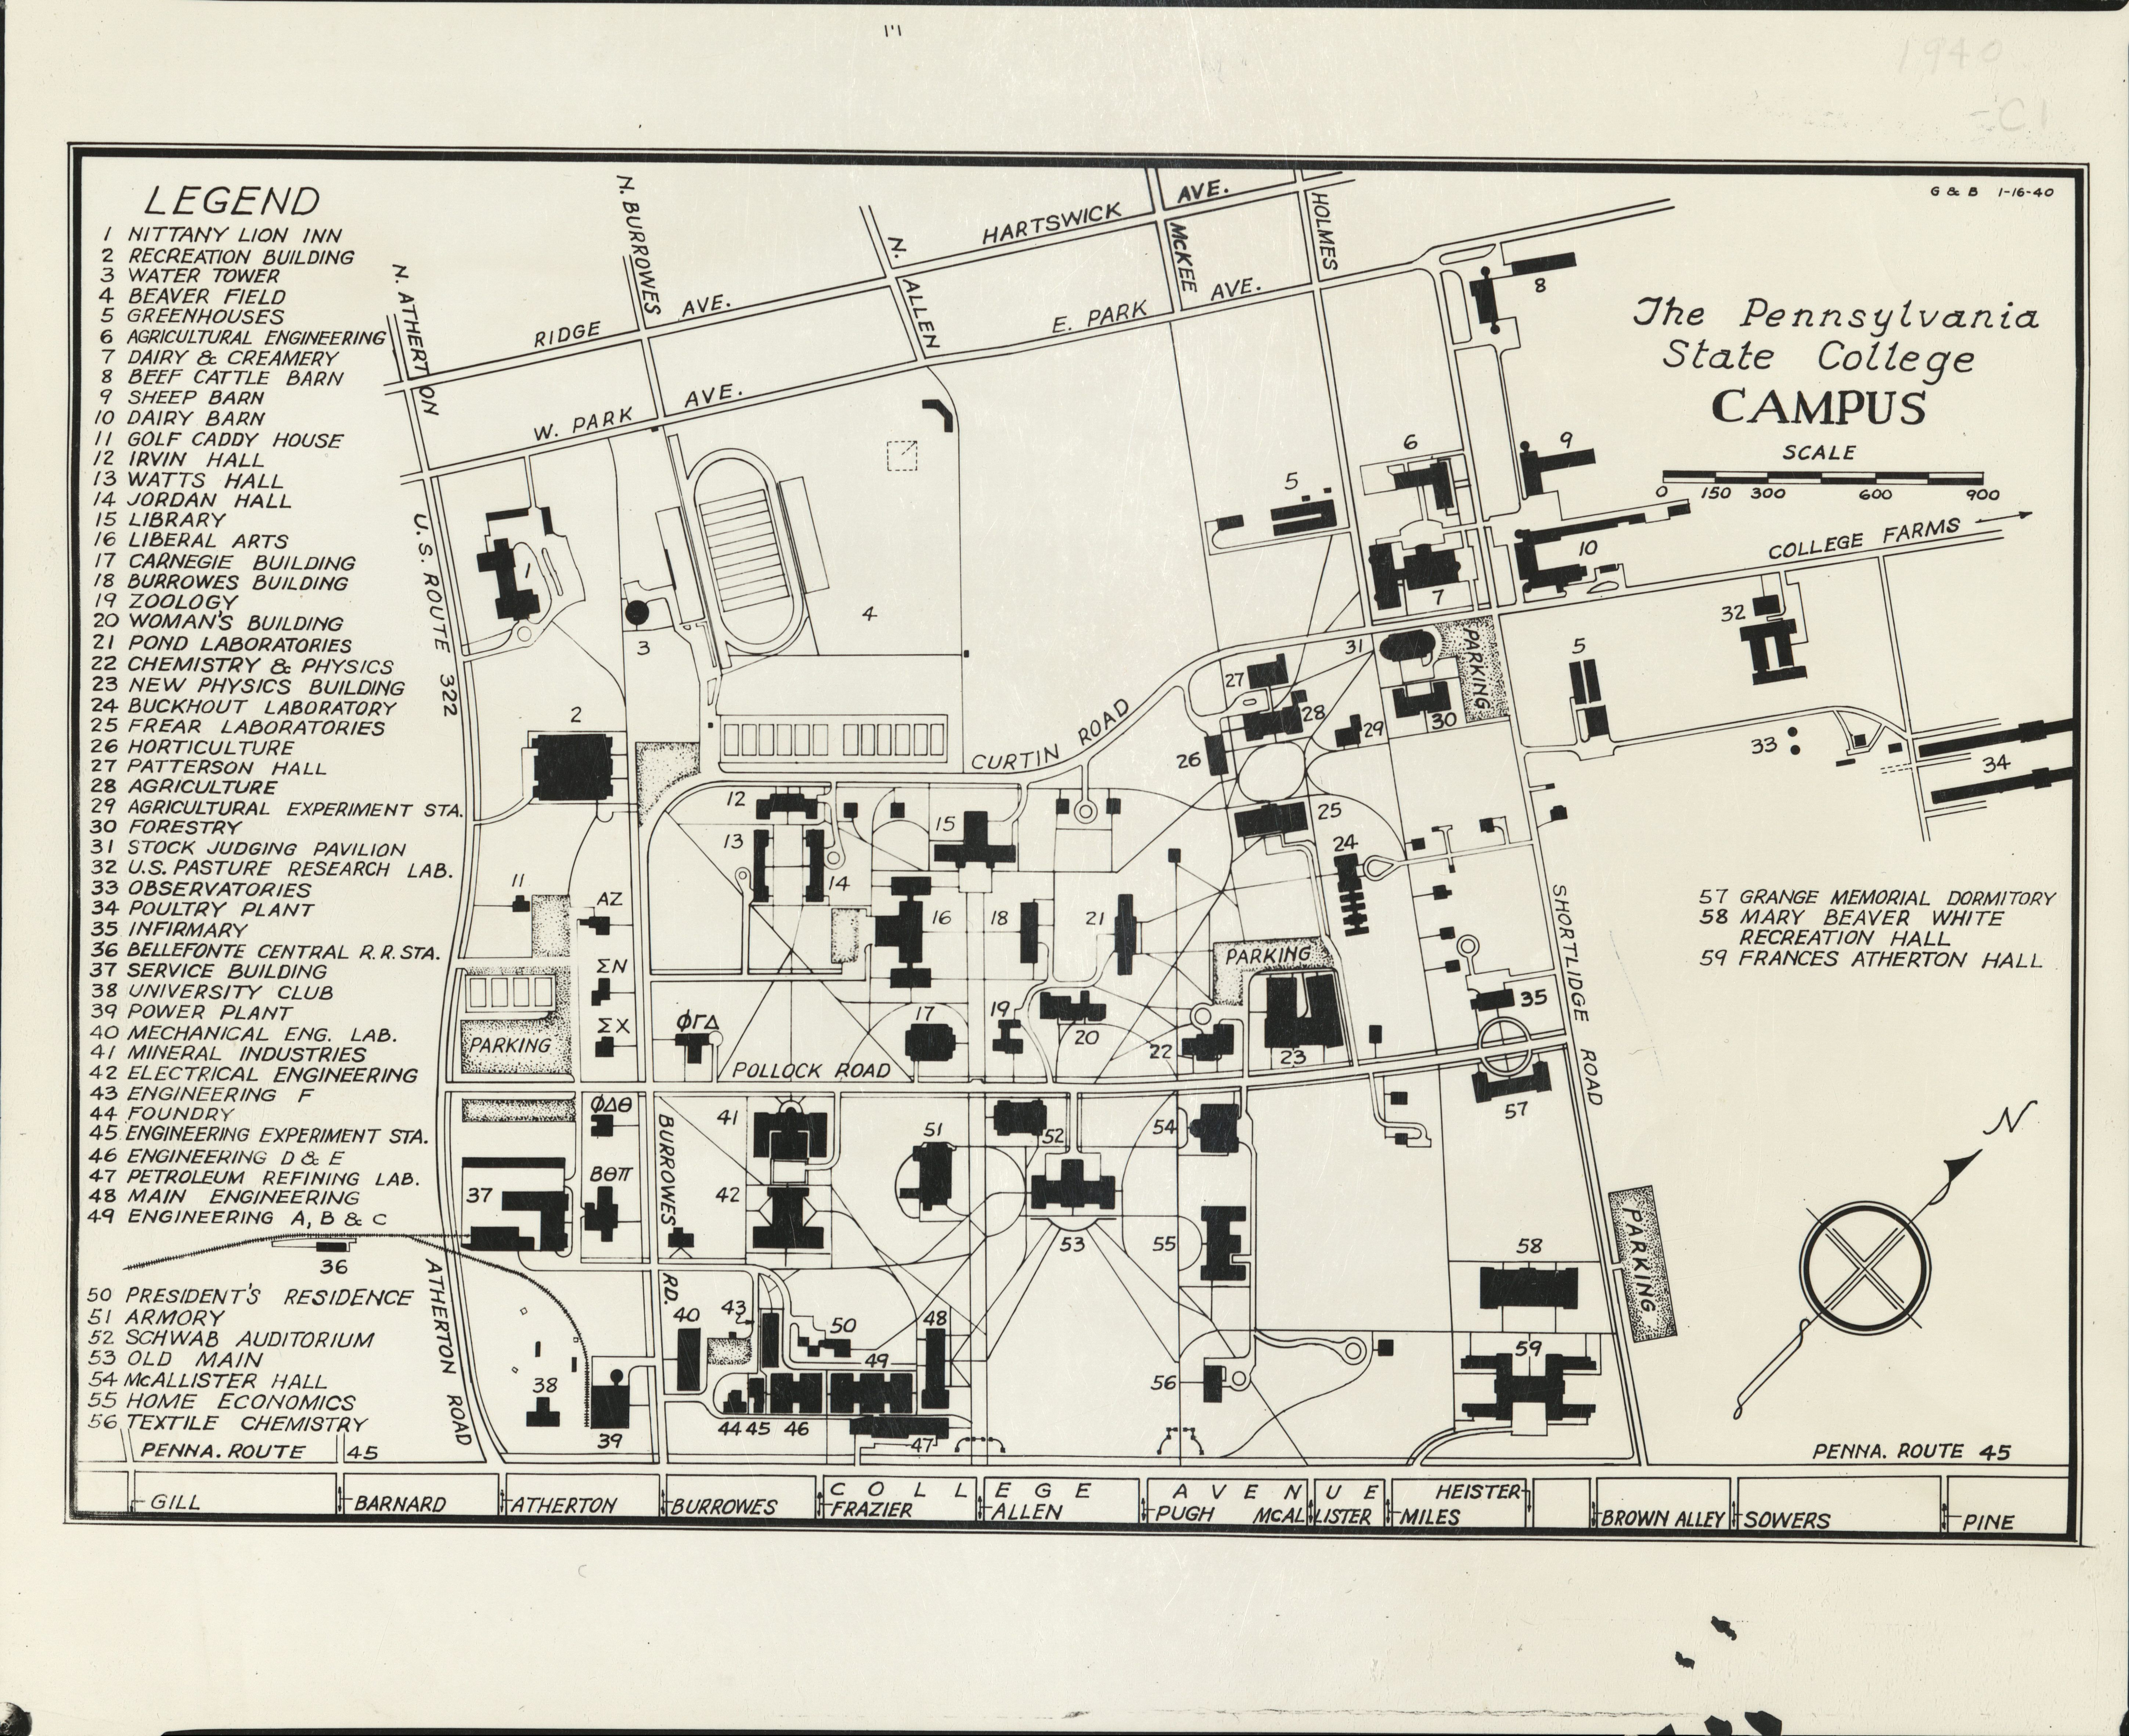 1940 PSU UP campus map